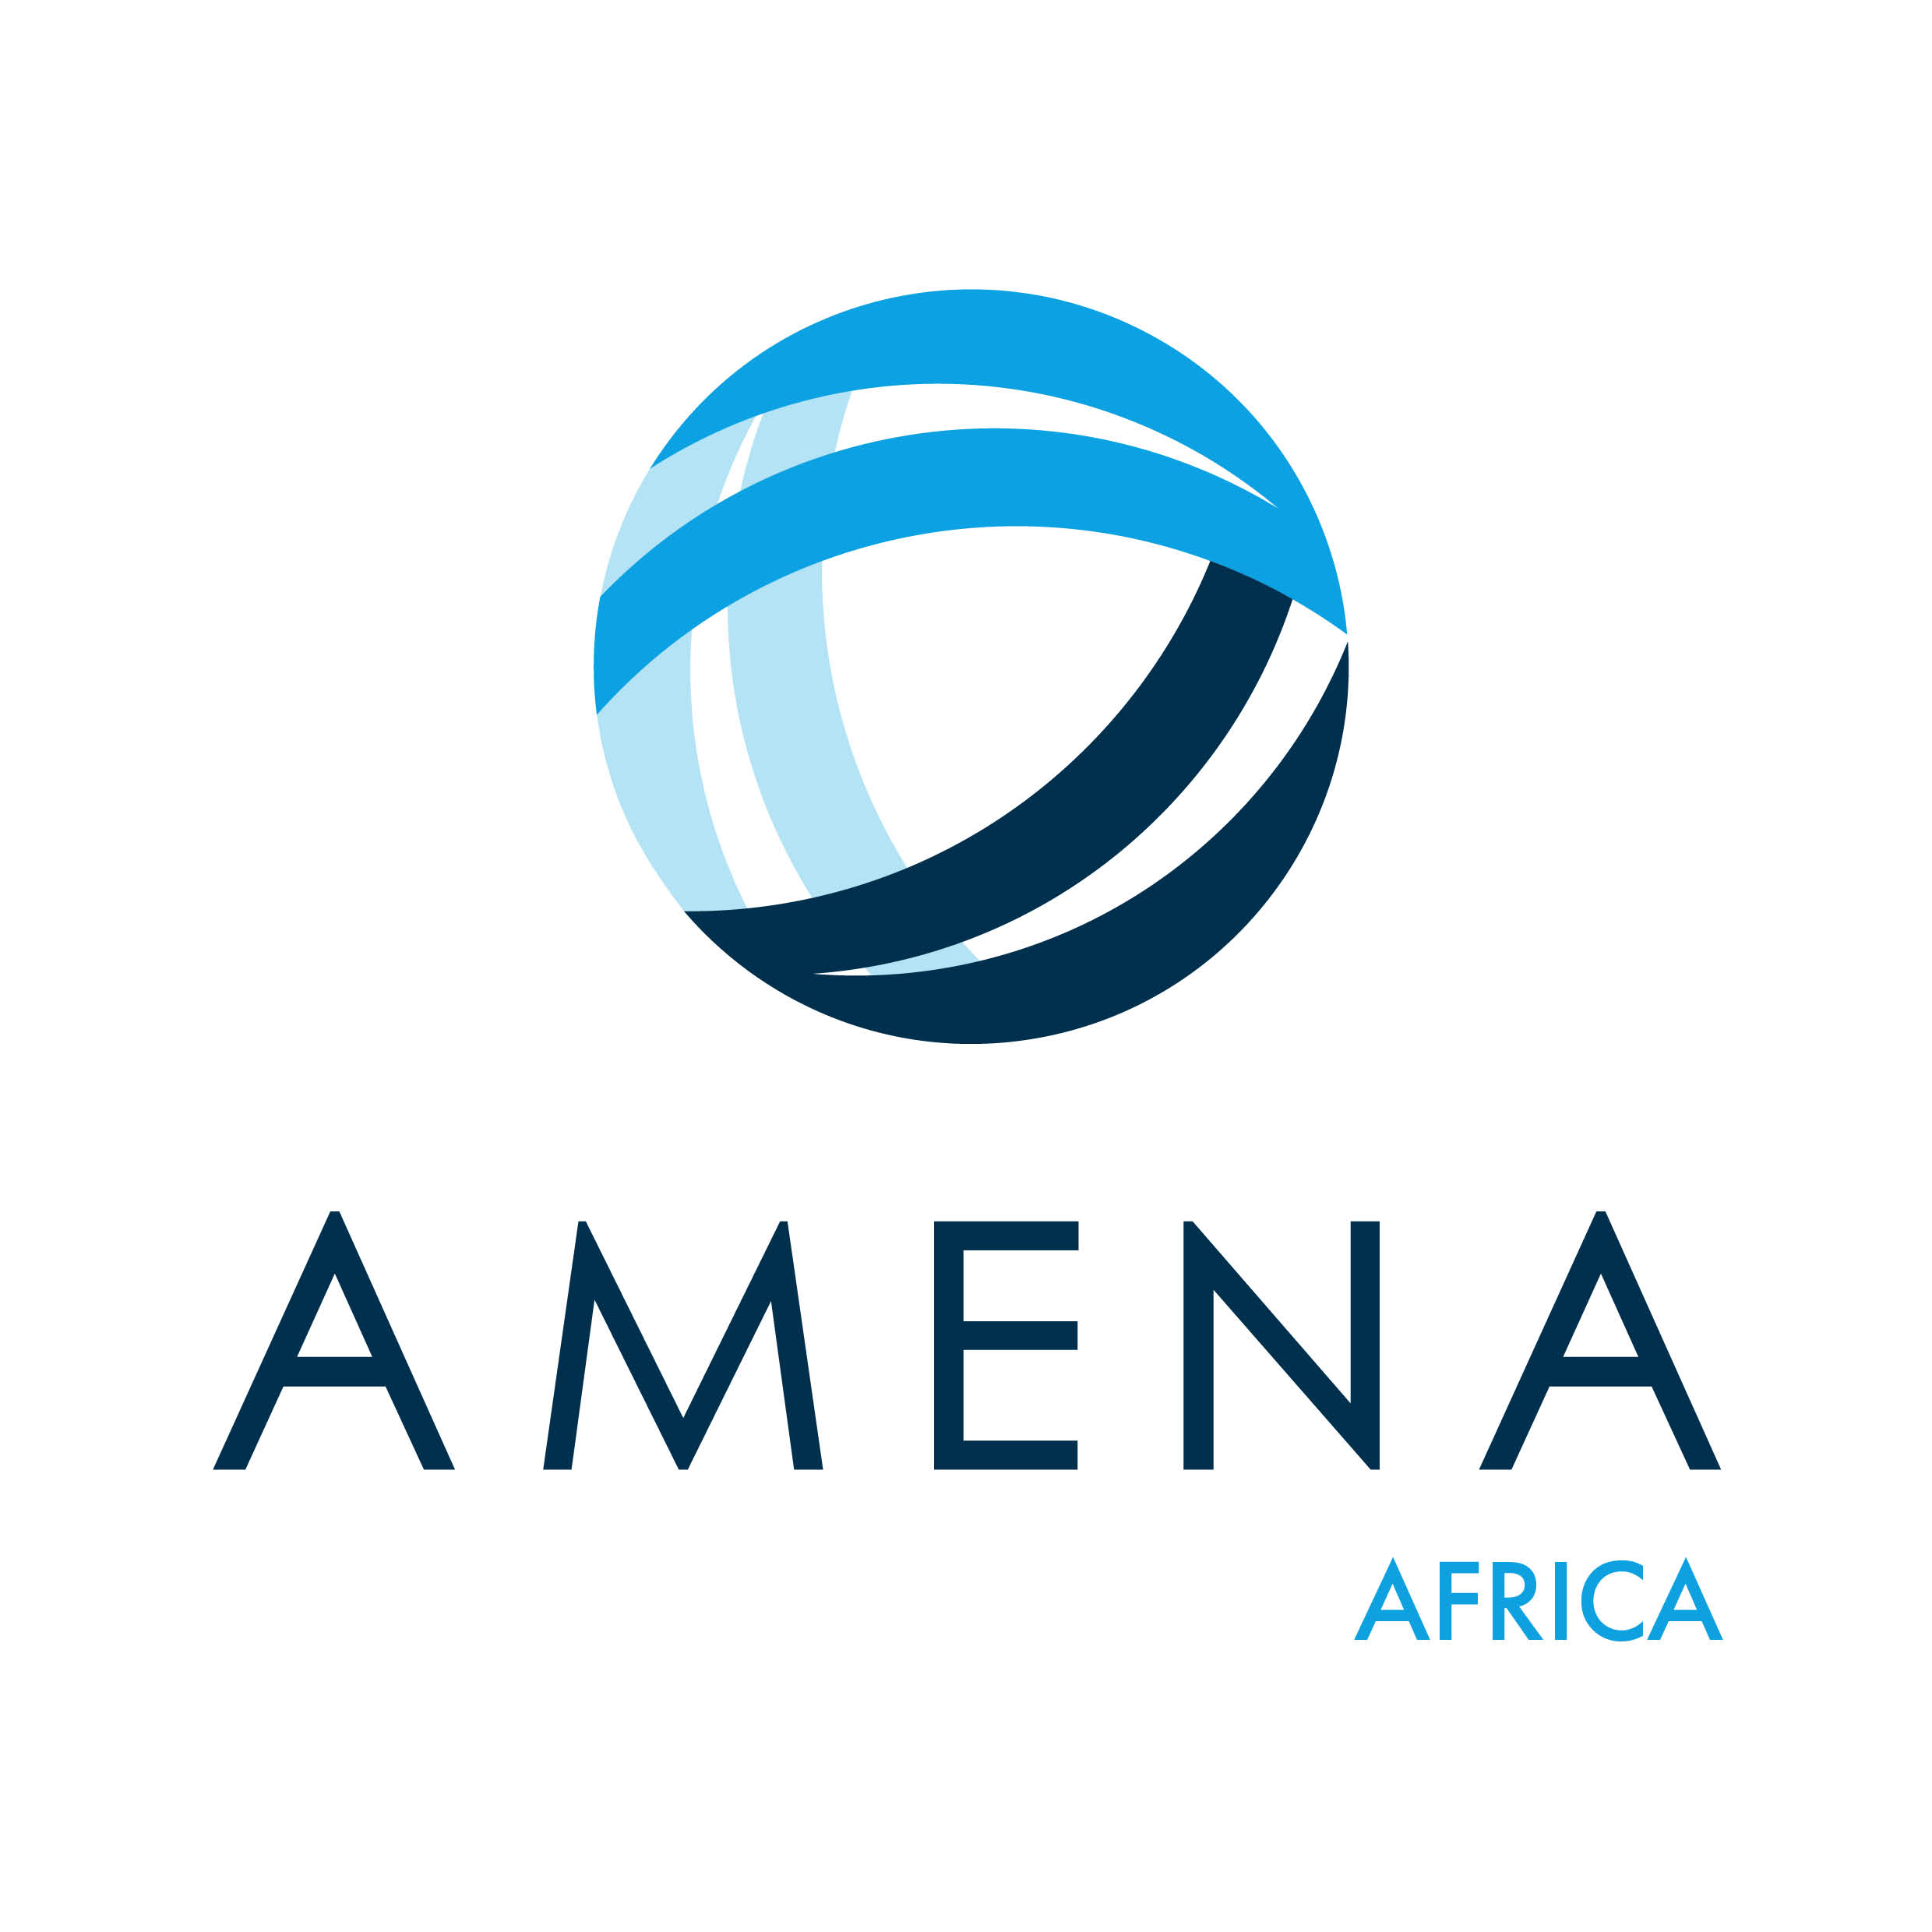 AMENA Africa Ltd. lgoo